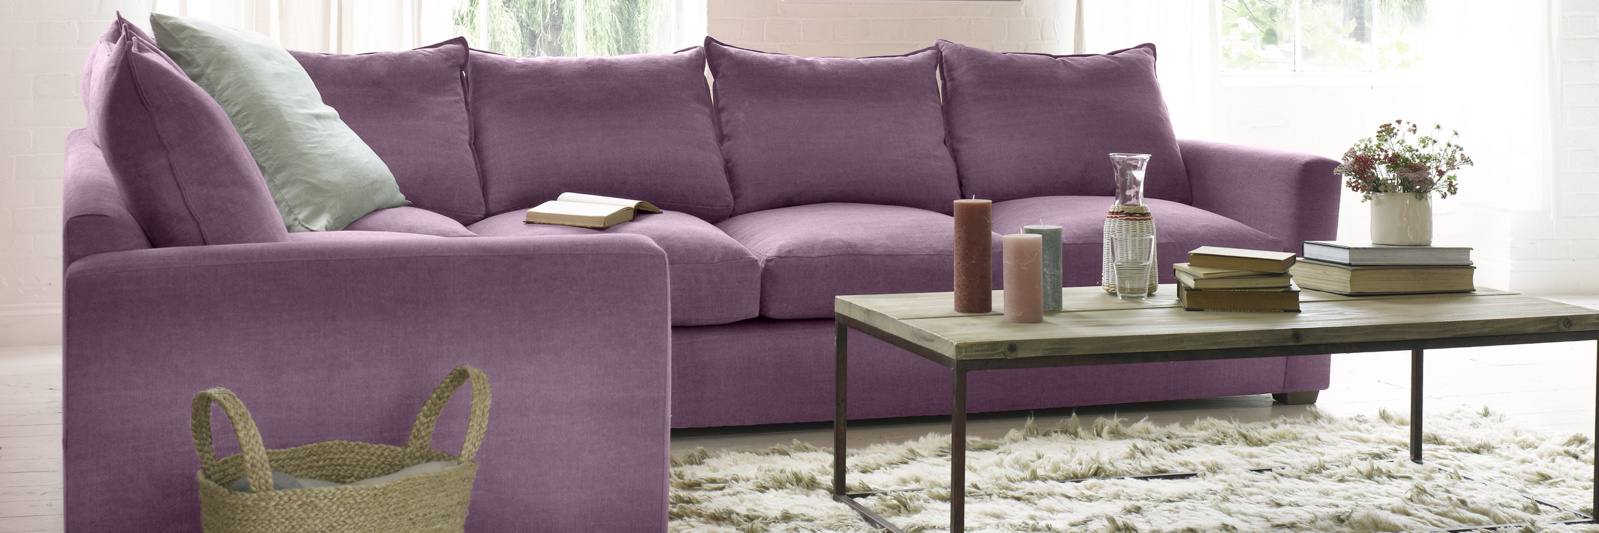 Pavilion chaise sofa in purple fabric